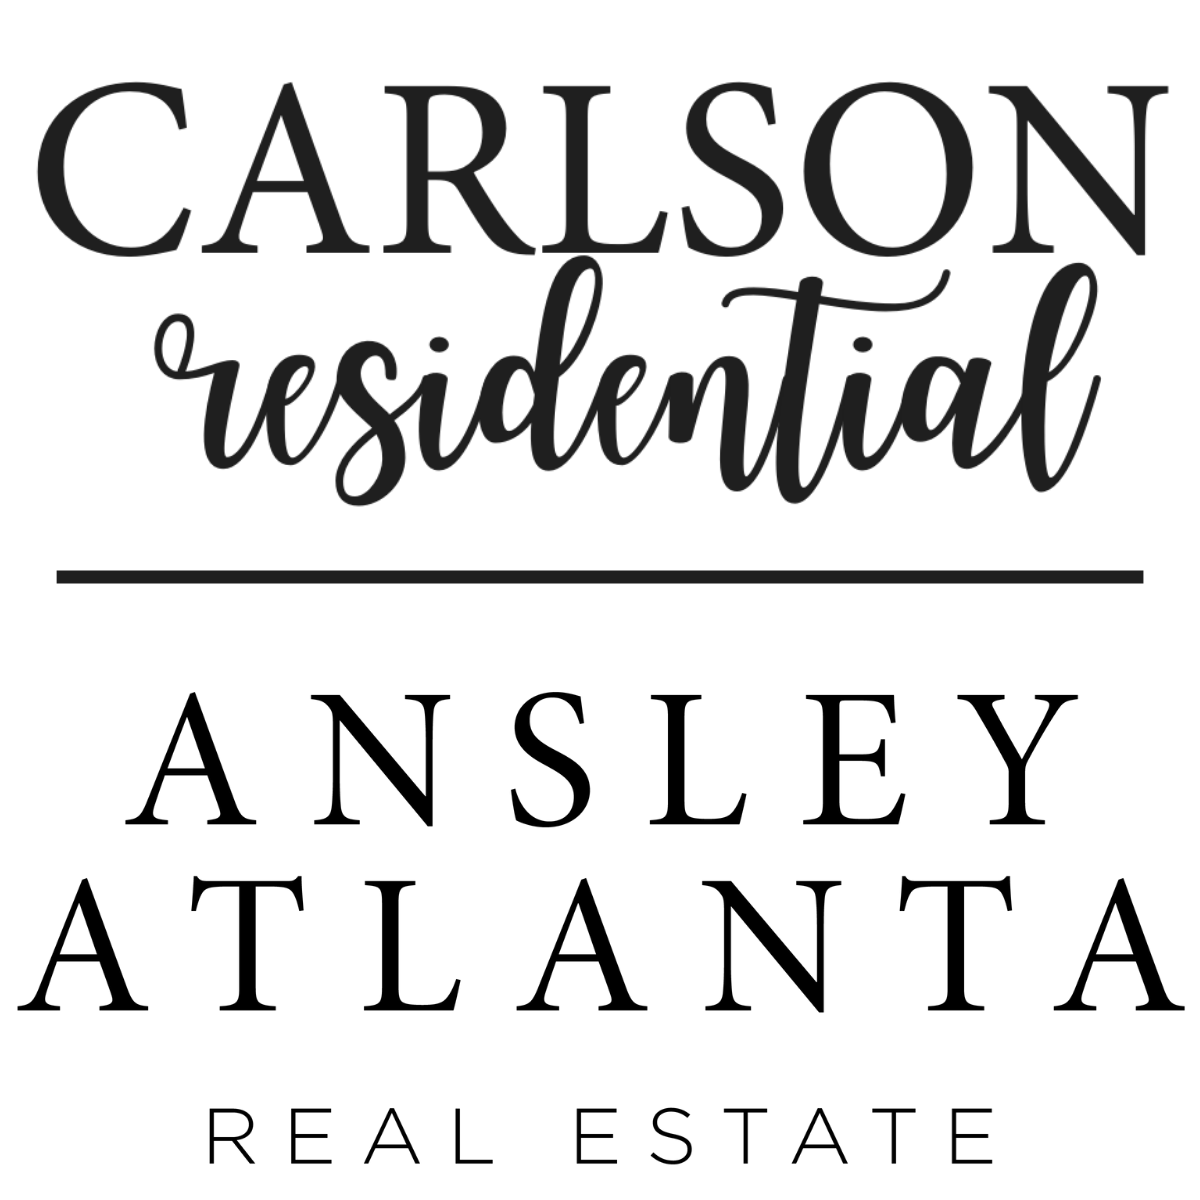 Carlson Residential of Ansley Atlanta Real Estate